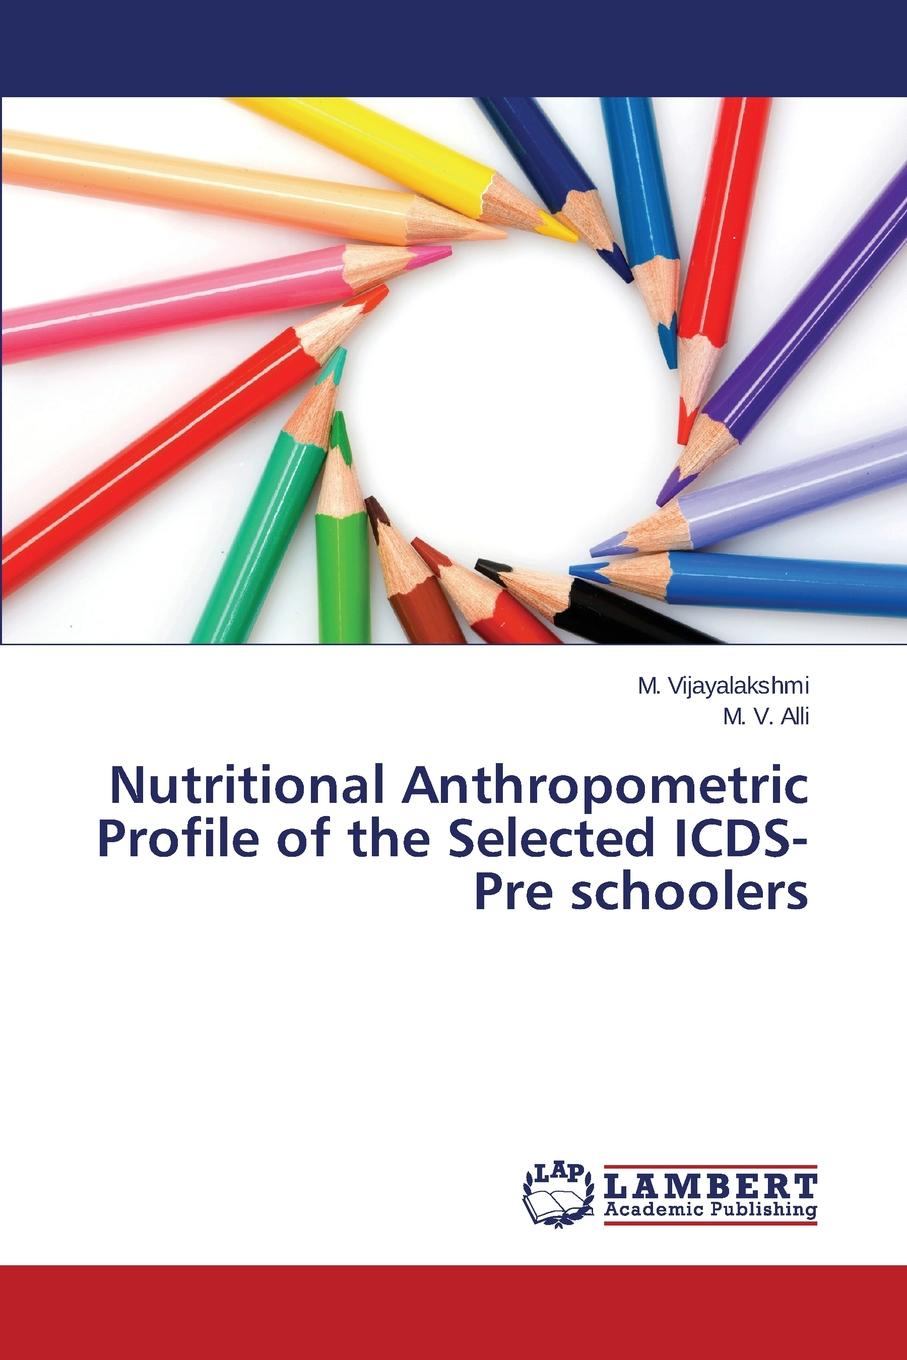 Vijayalakshmi M., Alli M. V. Nutritional Anthropometric Profile of the Selected ICDS-Pre schoolers free shipping children s scooter user age 2 5 years old 3 wheels blue pink